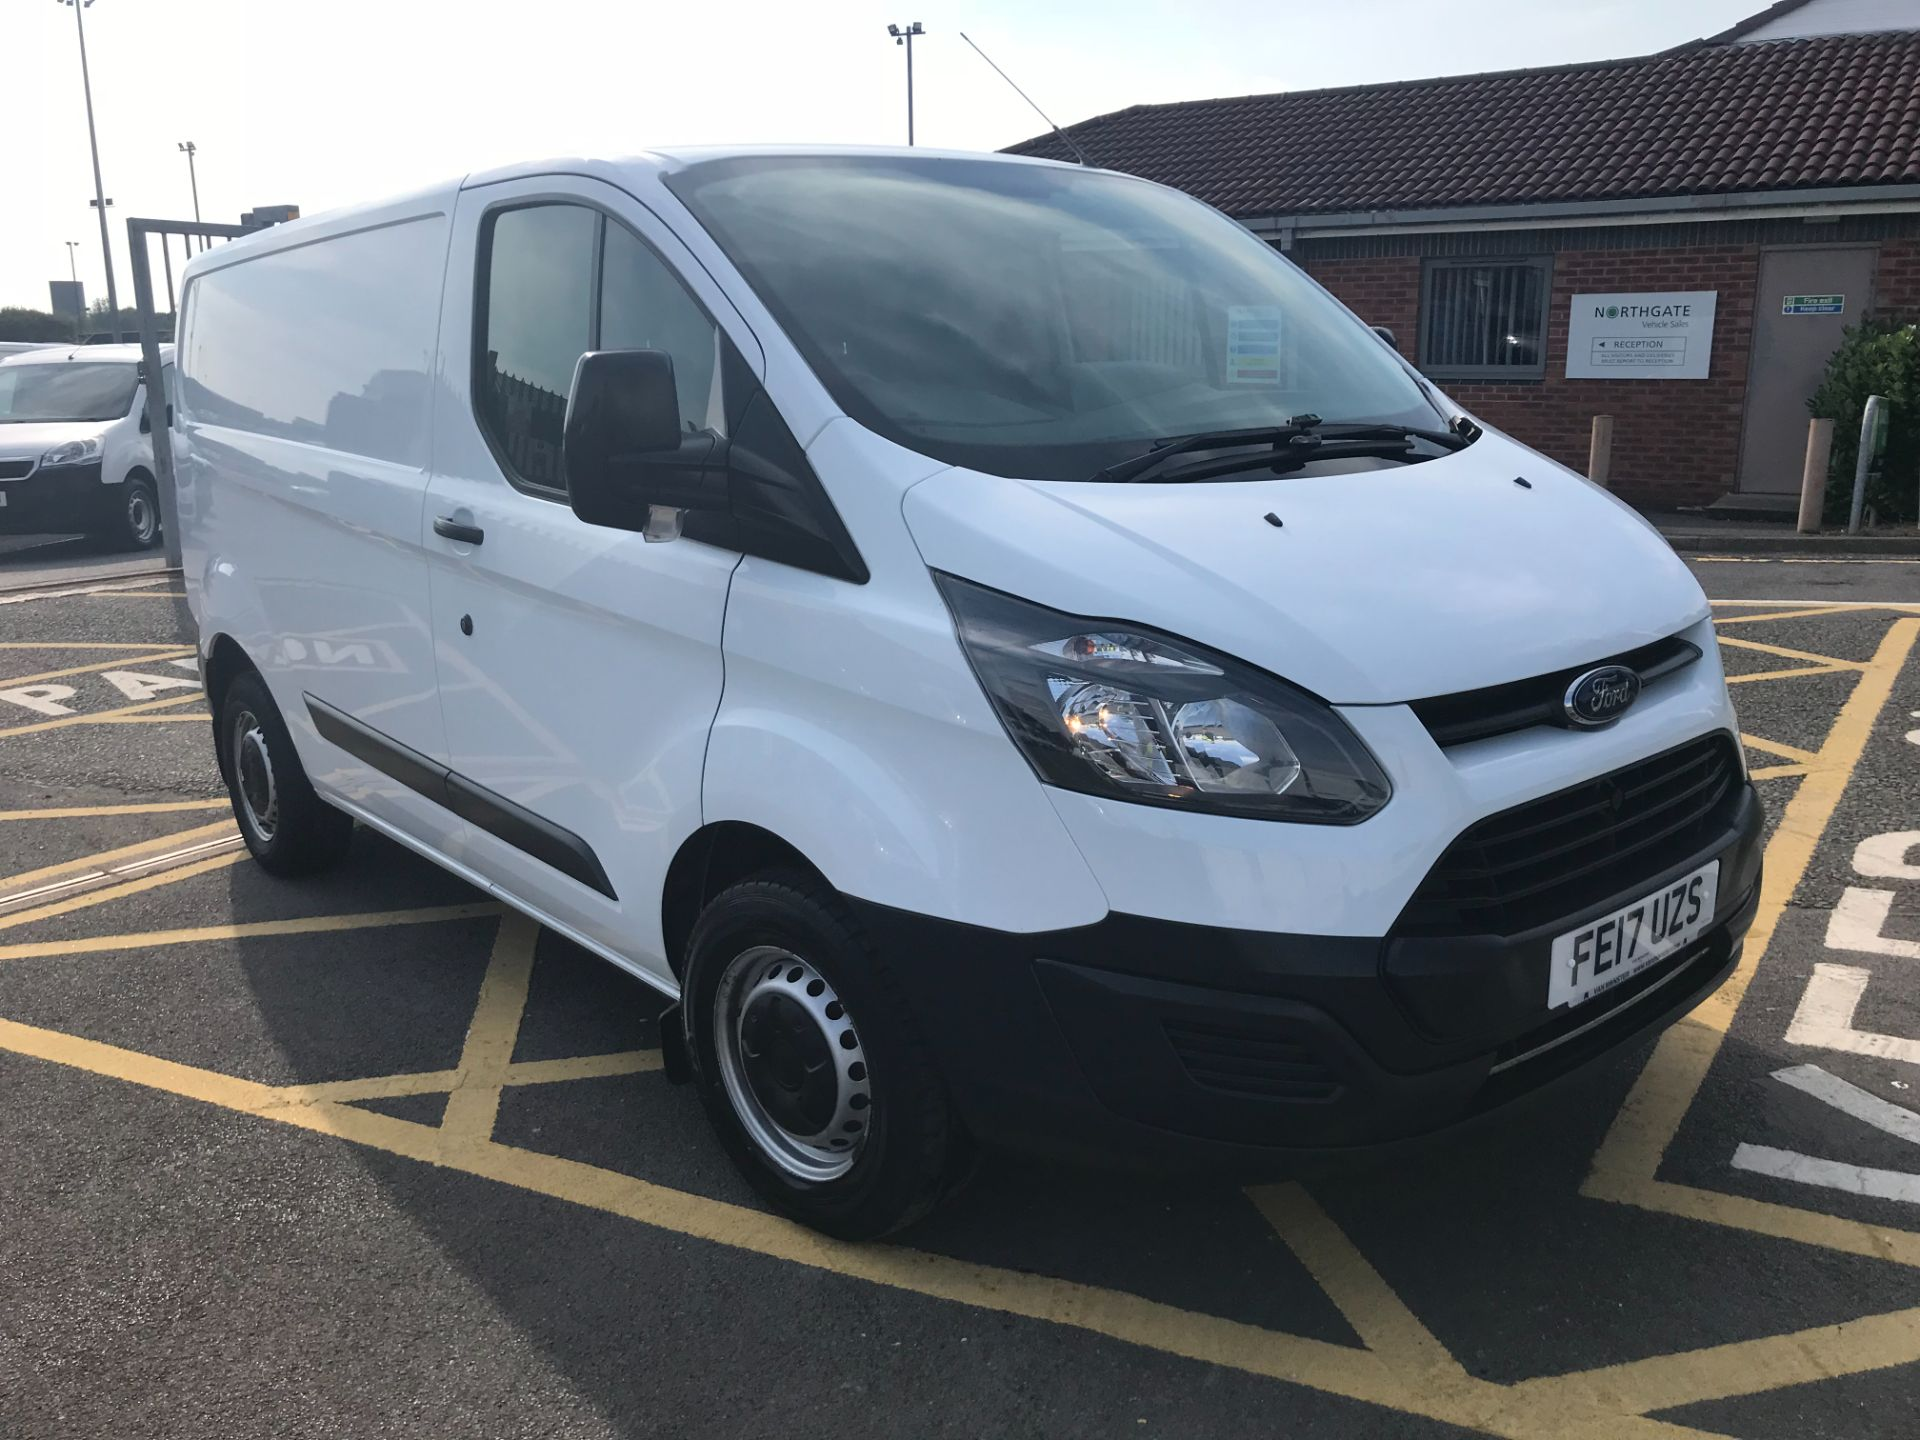 2017 Ford Transit Custom 2.0 Tdci 105Ps Low Roof Van (FE17UZS)